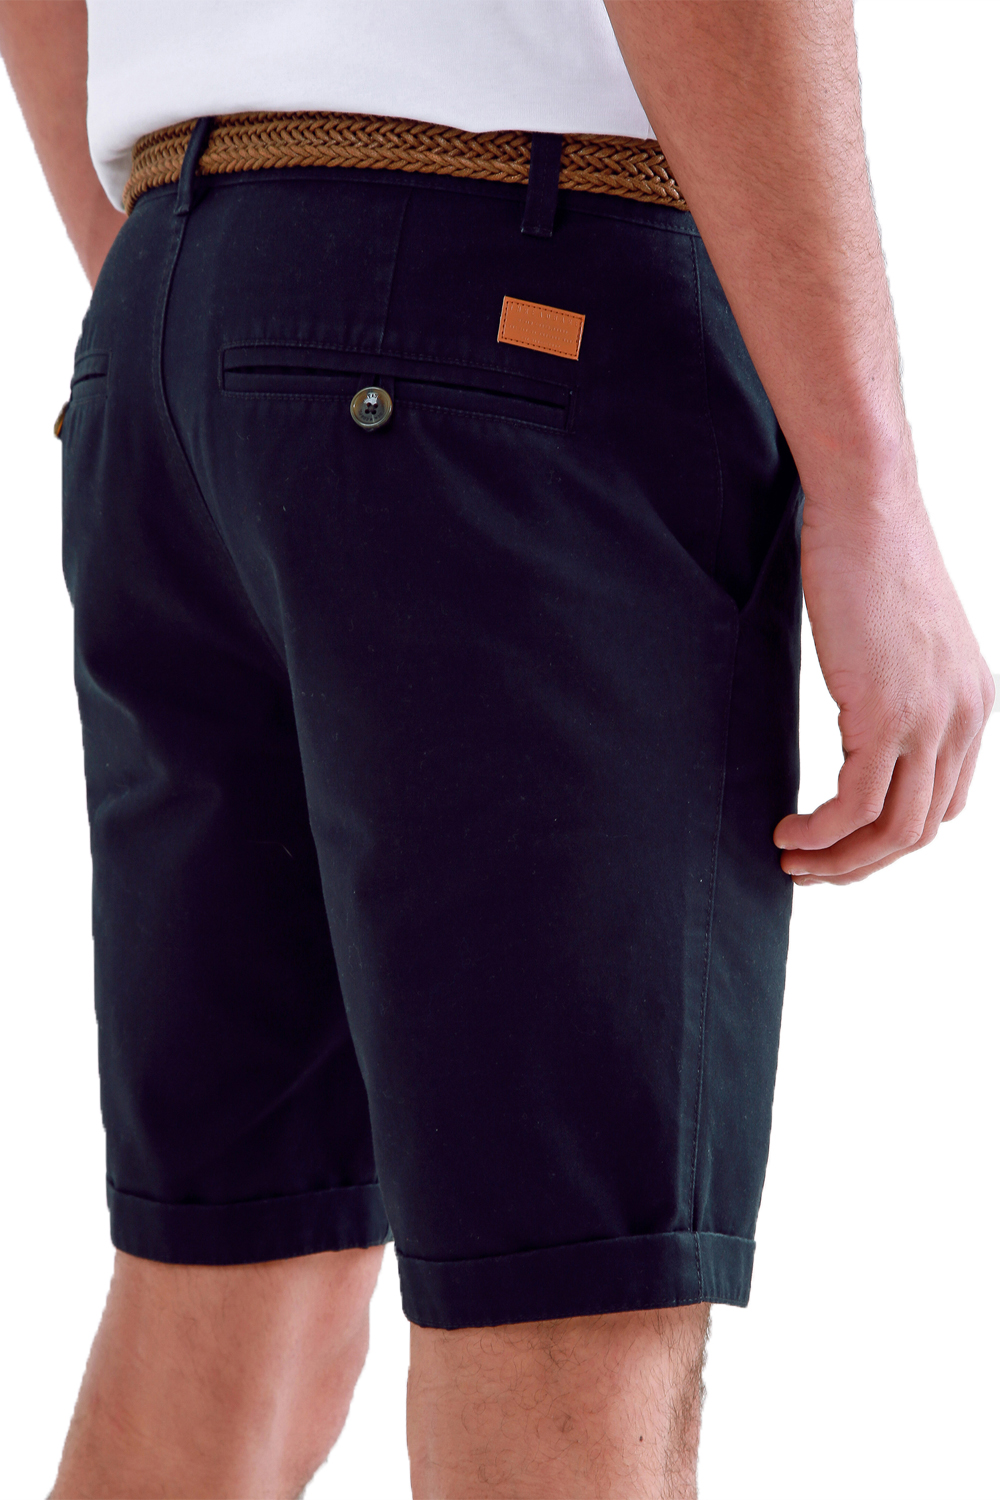 Threadbare-Mens-Slim-Fit-Belted-Chino-Shorts-Summer-Casual-Cotton-Smart-Bottoms thumbnail 6